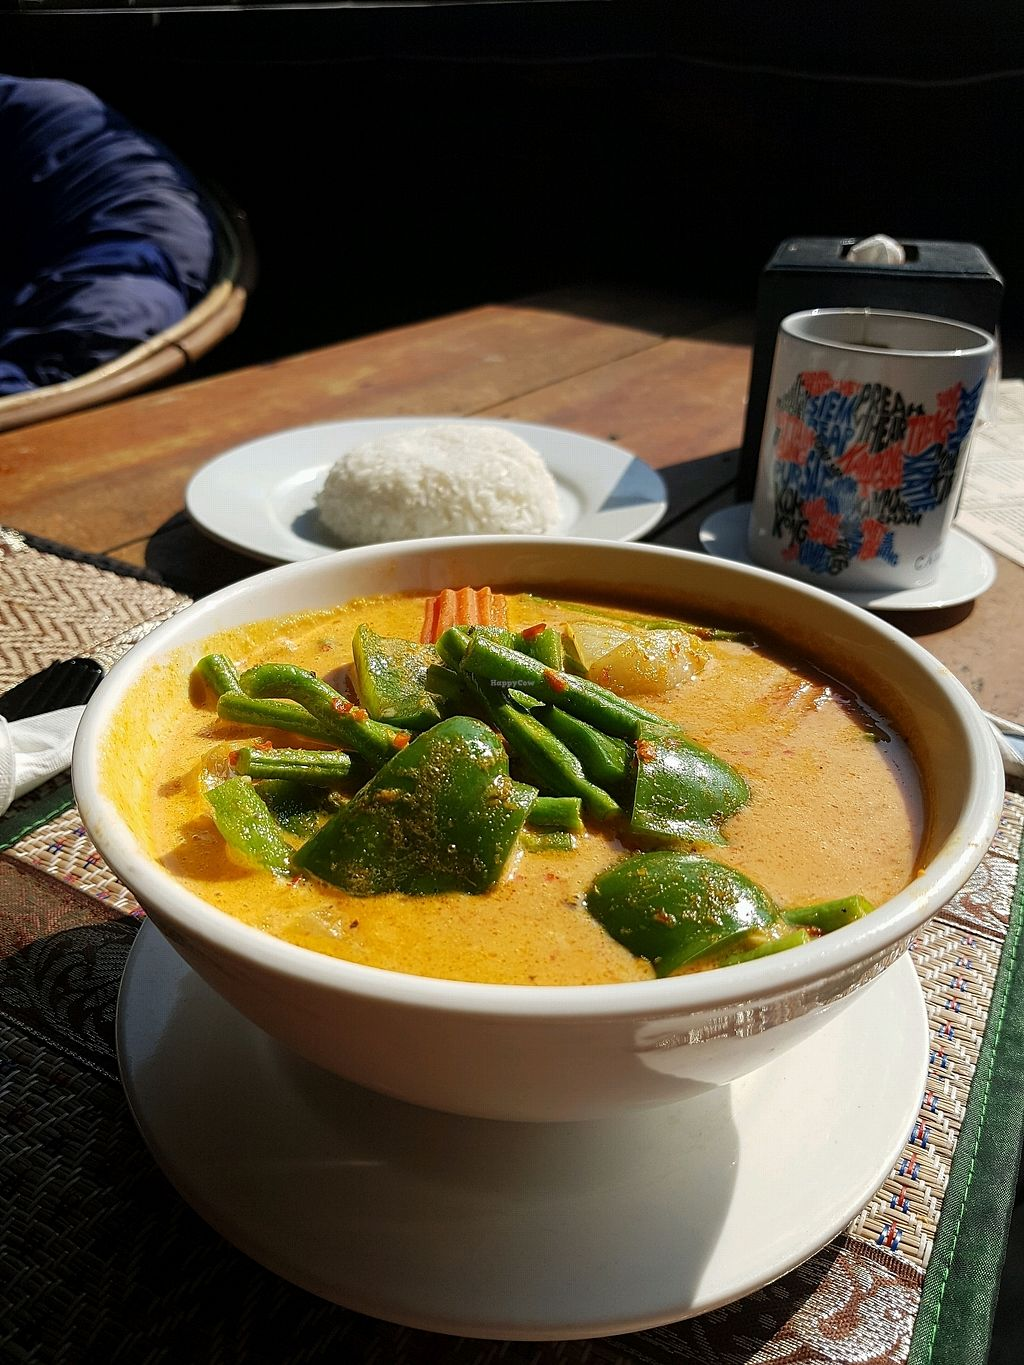 """Photo of Lazy Beach  by <a href=""""/members/profile/vegatleticas"""">vegatleticas</a> <br/>Coconut curry <br/> February 24, 2018  - <a href='/contact/abuse/image/82463/362995'>Report</a>"""